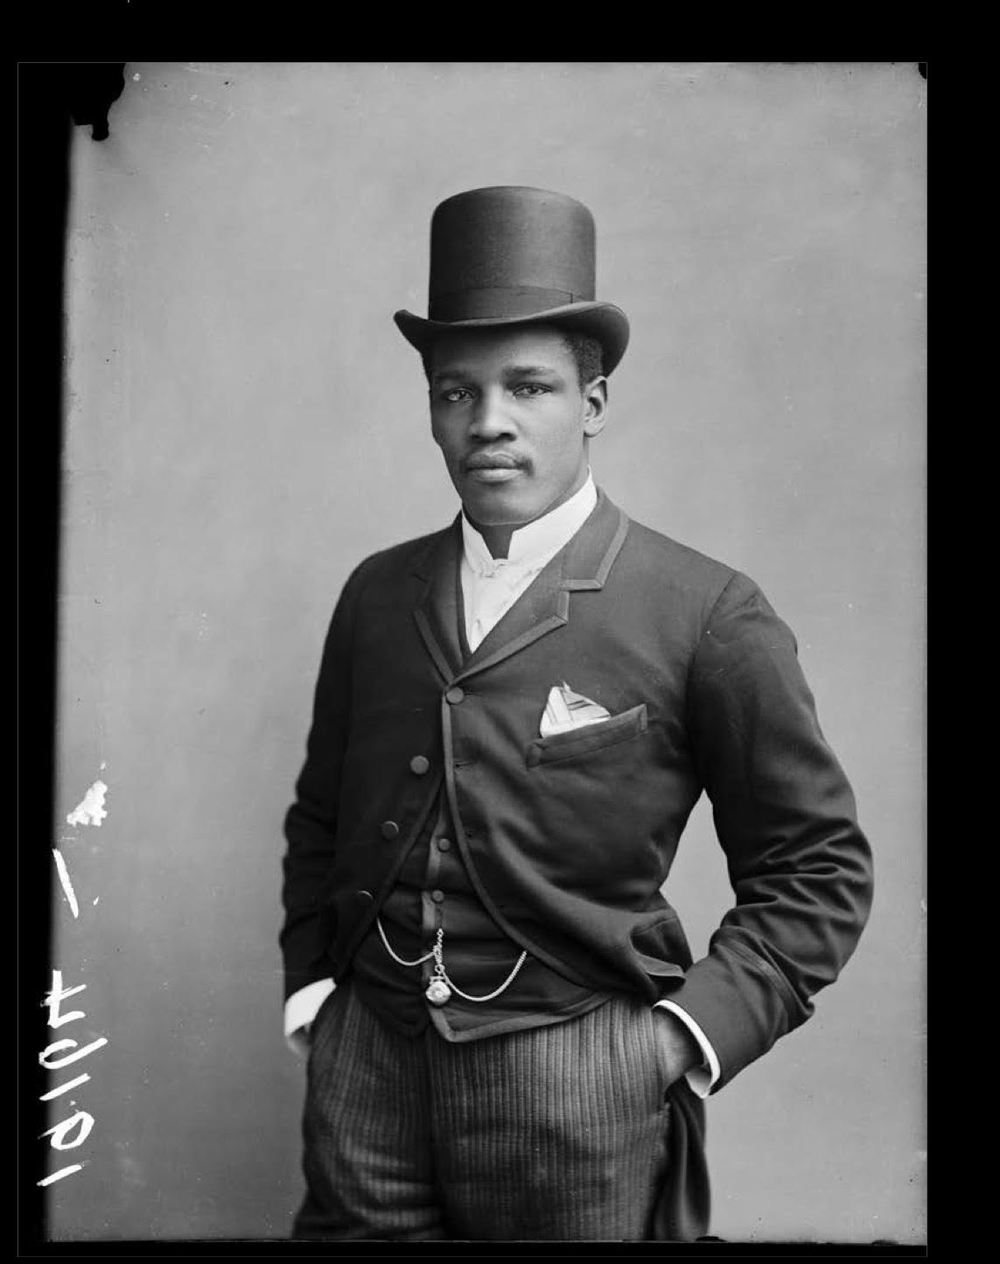 Image: Peter Jackson. London Stereoscopic Company, 1889 Courtesy © Hulton Archive/Getty Images.